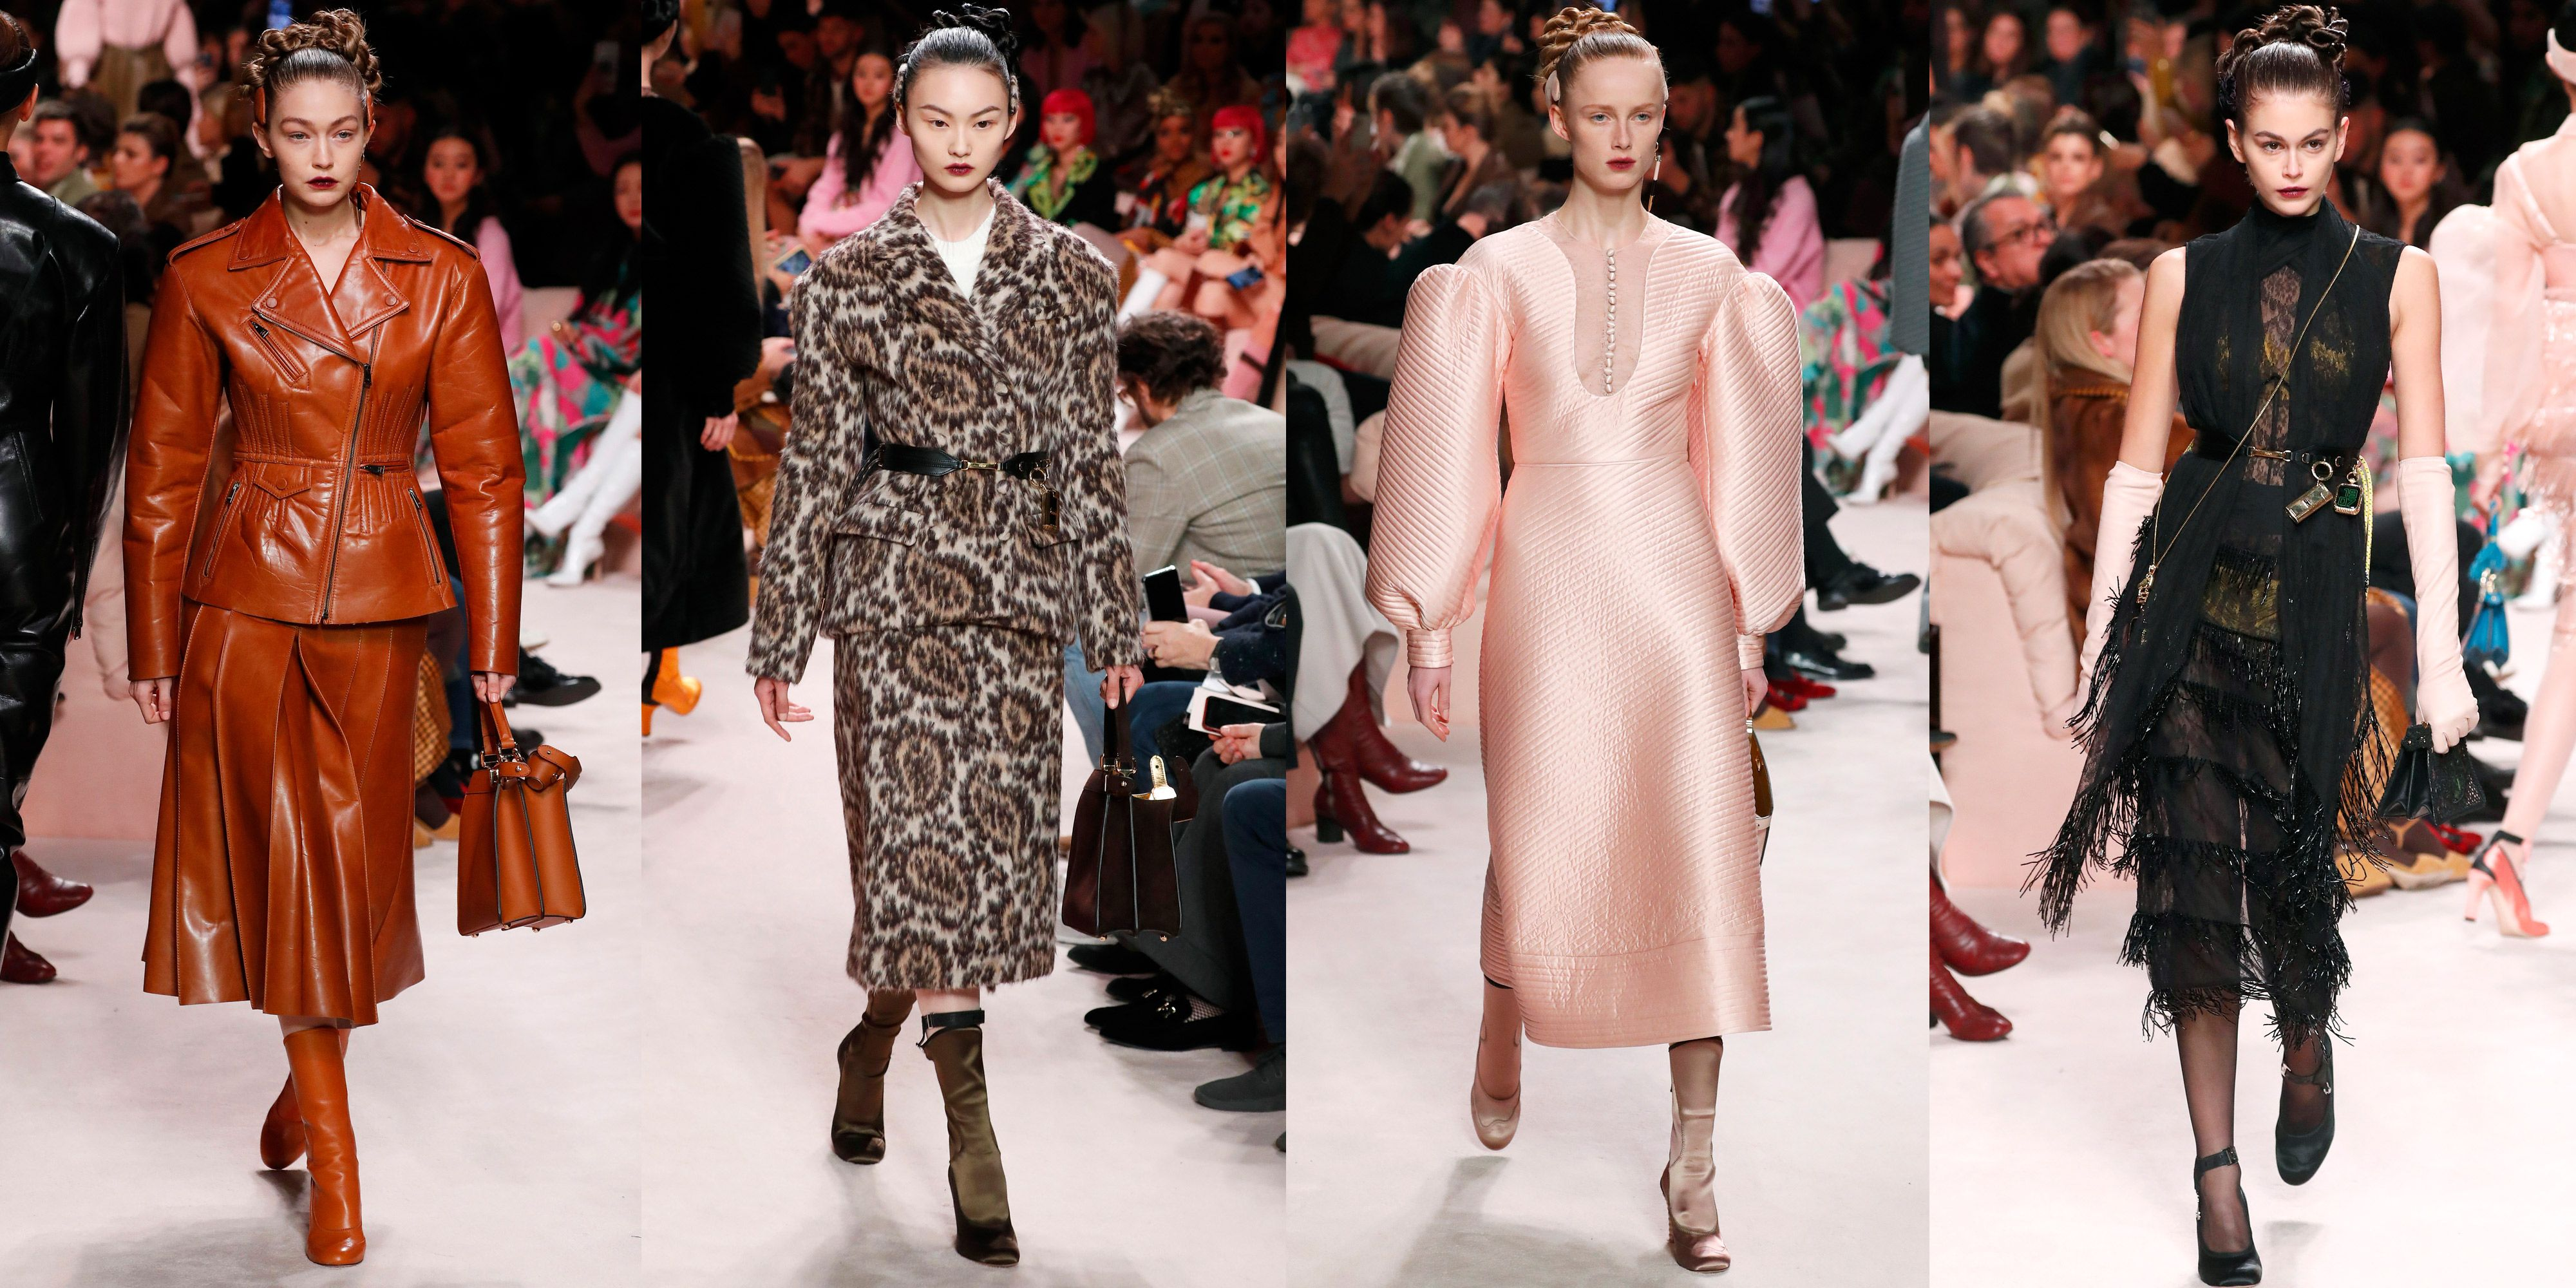 Every Look in Fendi's Fall 2020 Runway Collection